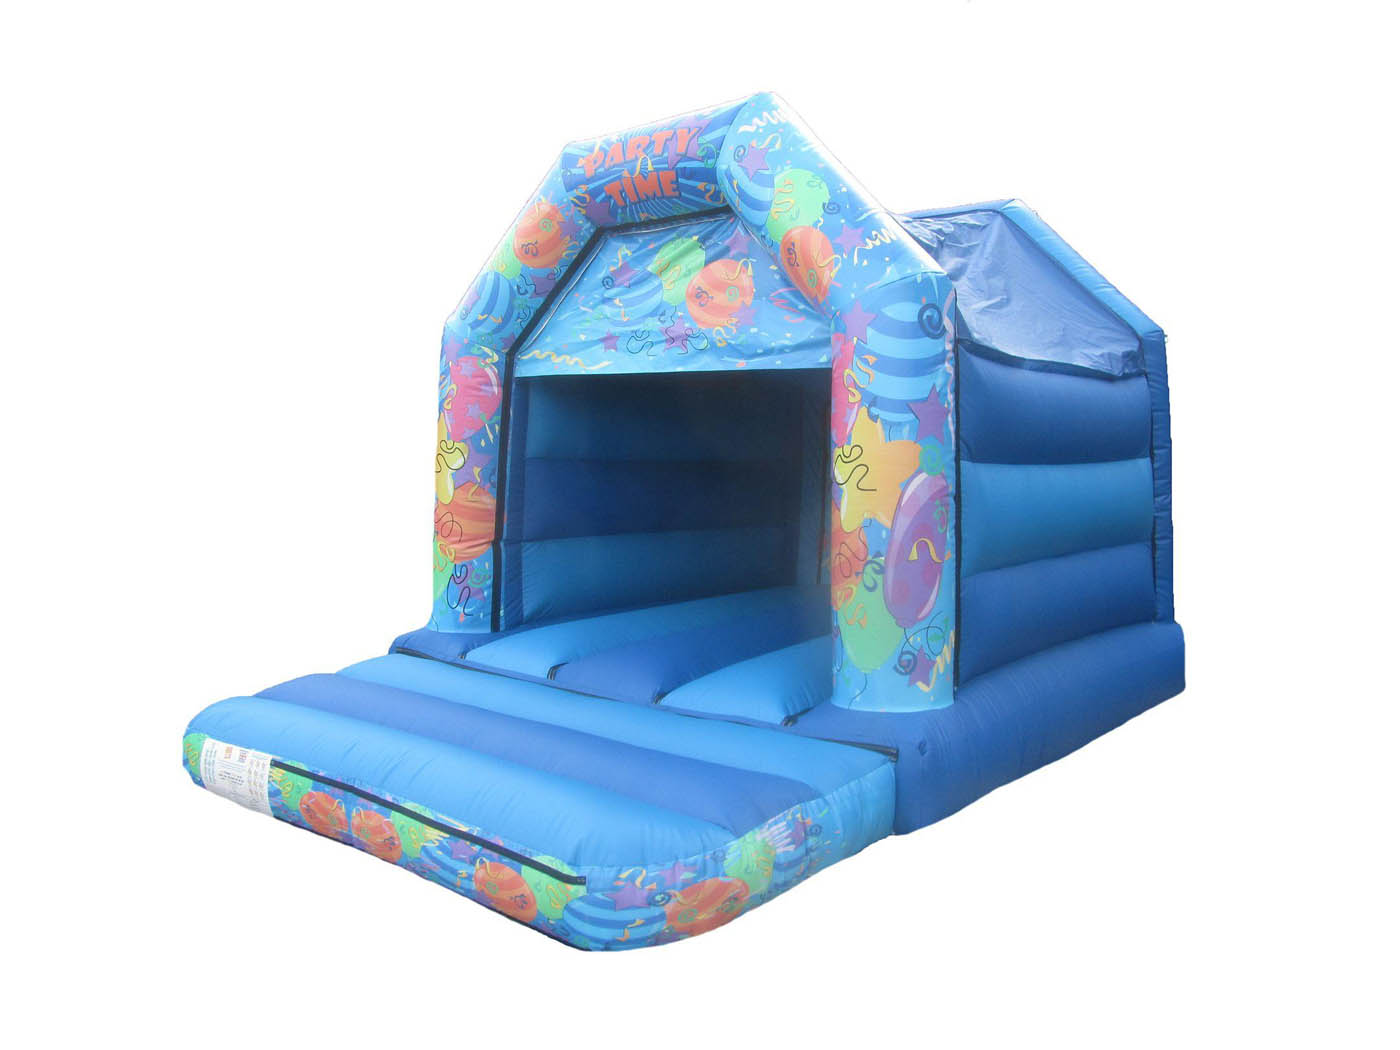 Party Velcro Commercial Bouncy Castle for Sale